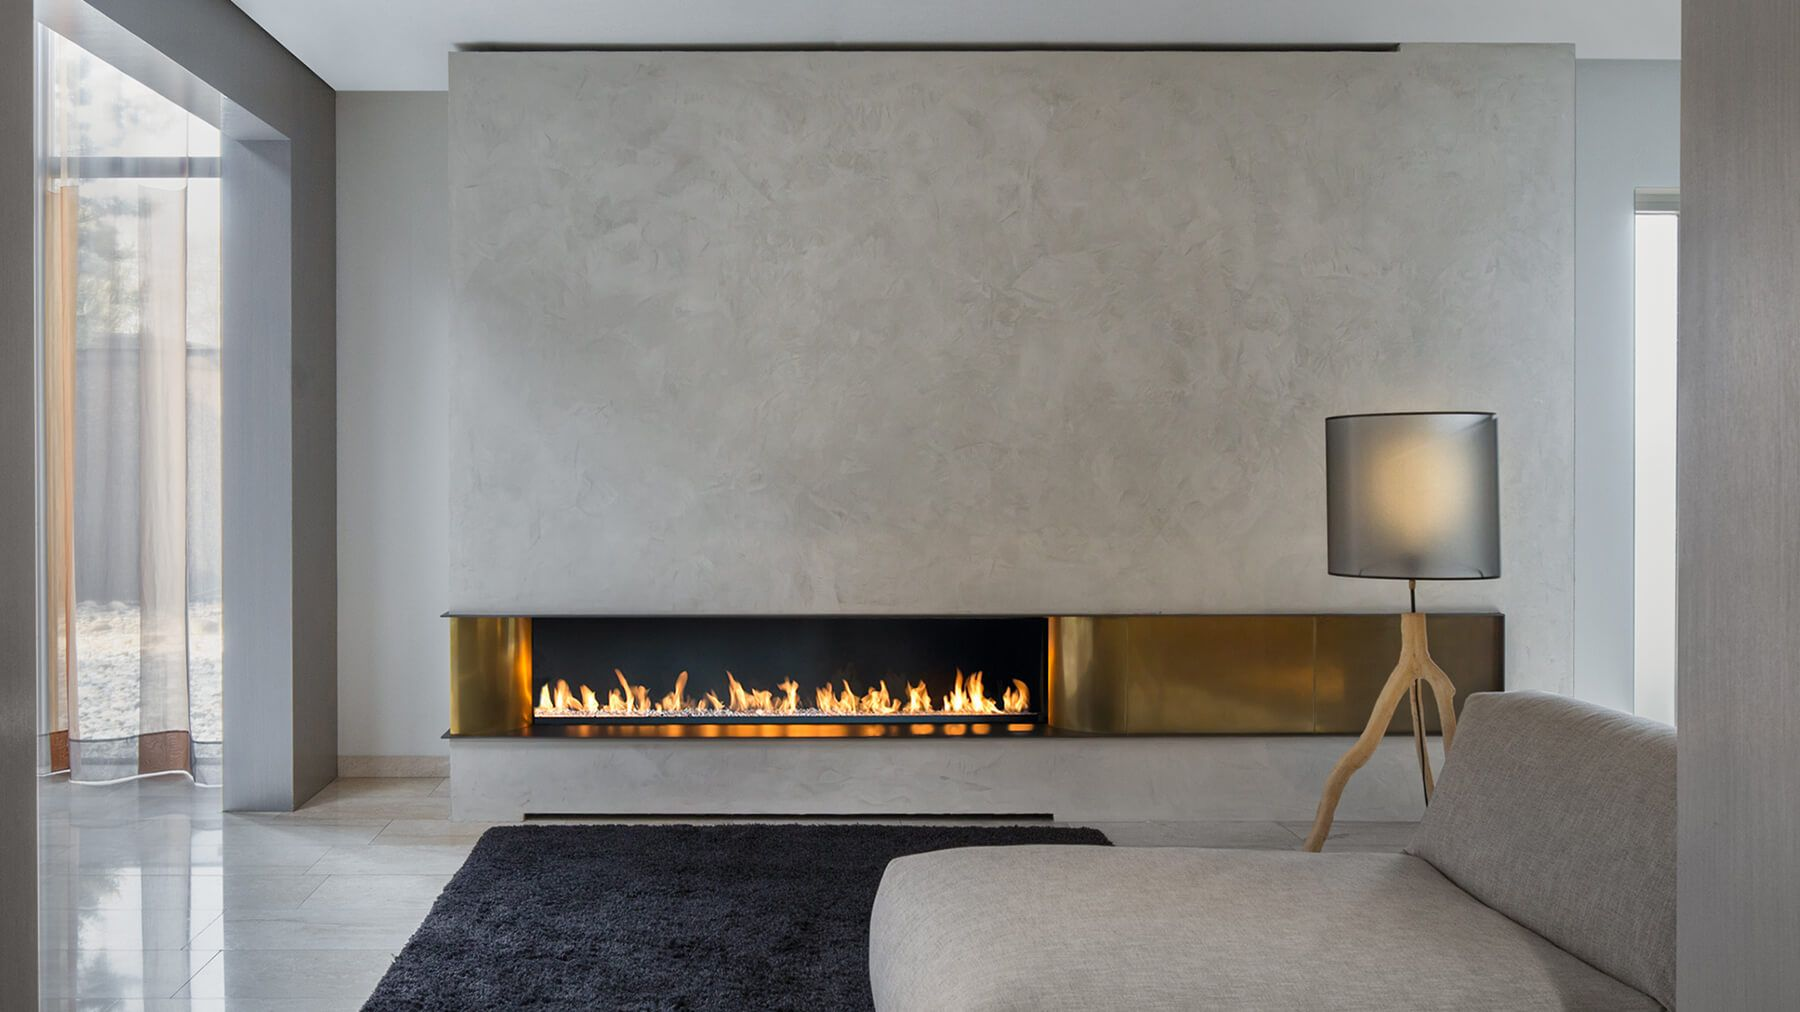 Design Modern Gas Fireplace 20 of the most amazing modern fireplace ideas gas ideas